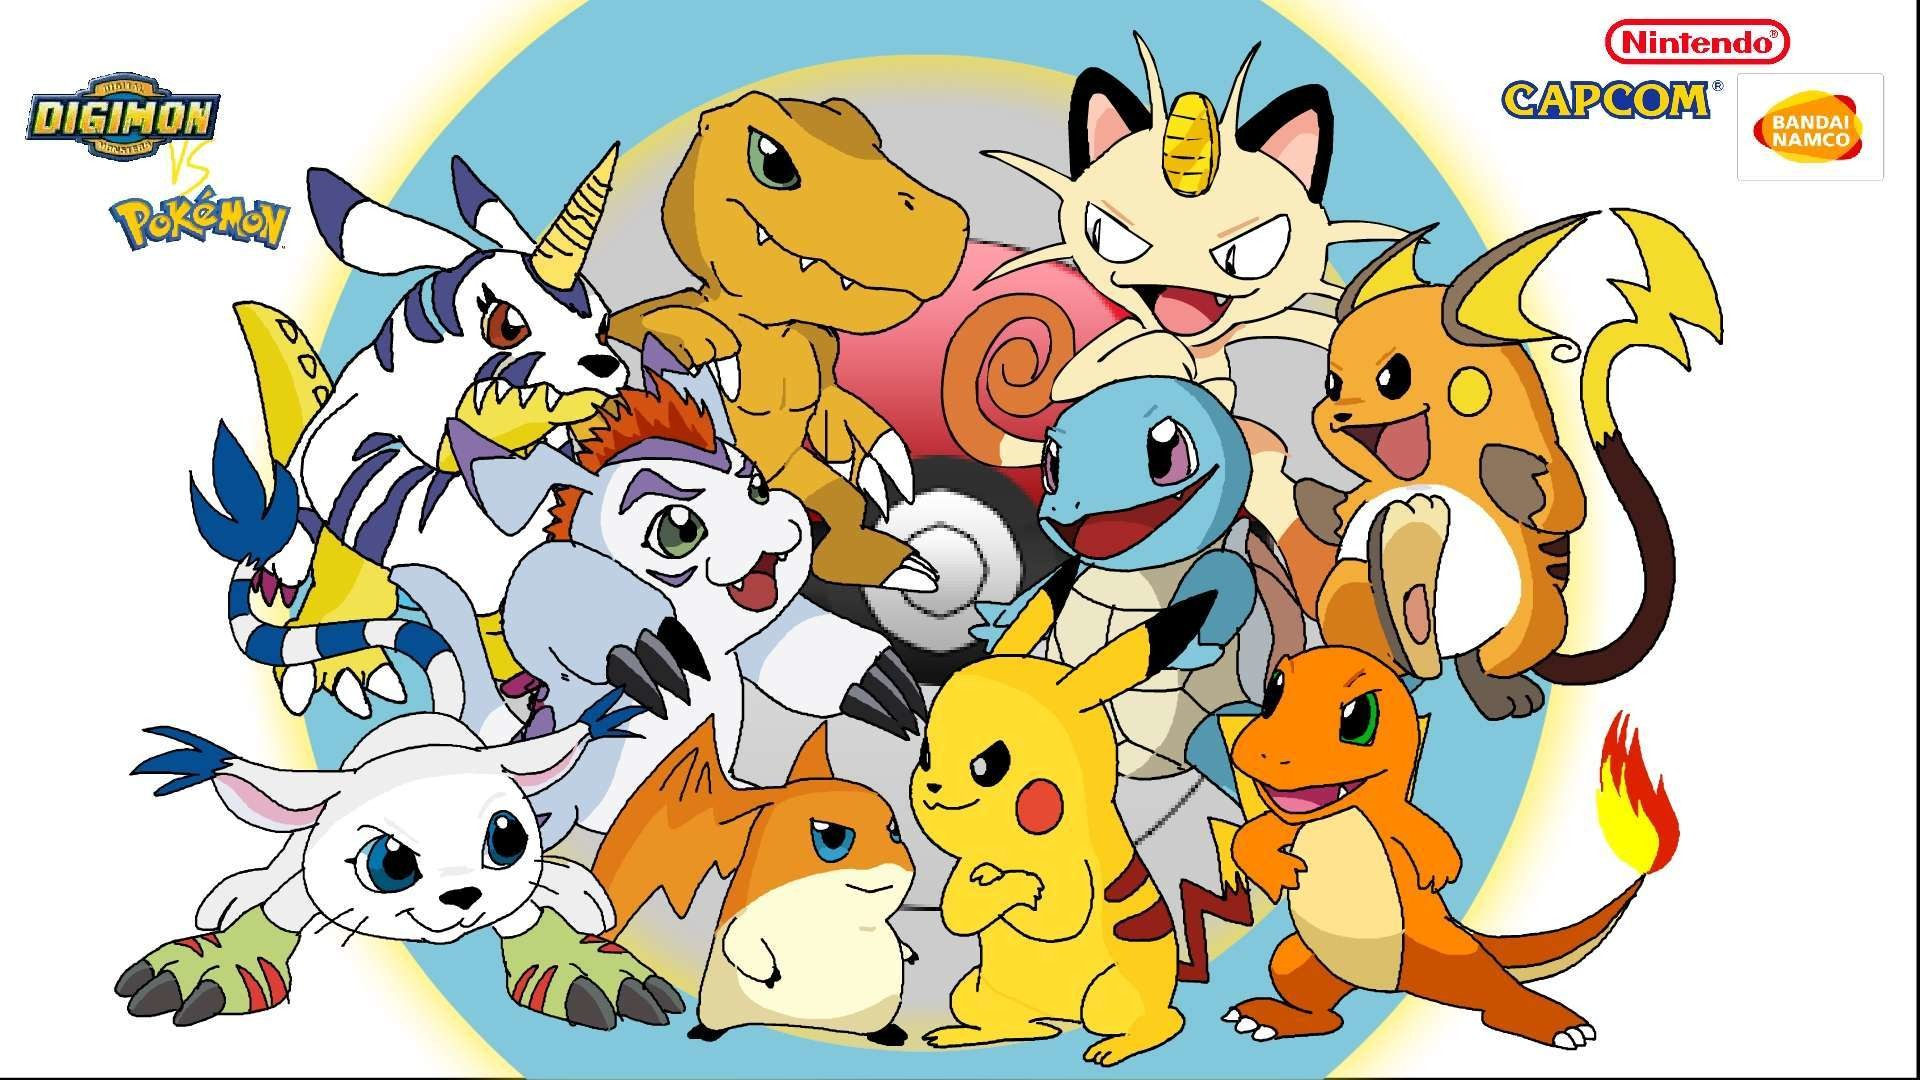 Pictures Pokemon Game Hd Wallpaper – https://wallucky.com/pictures-